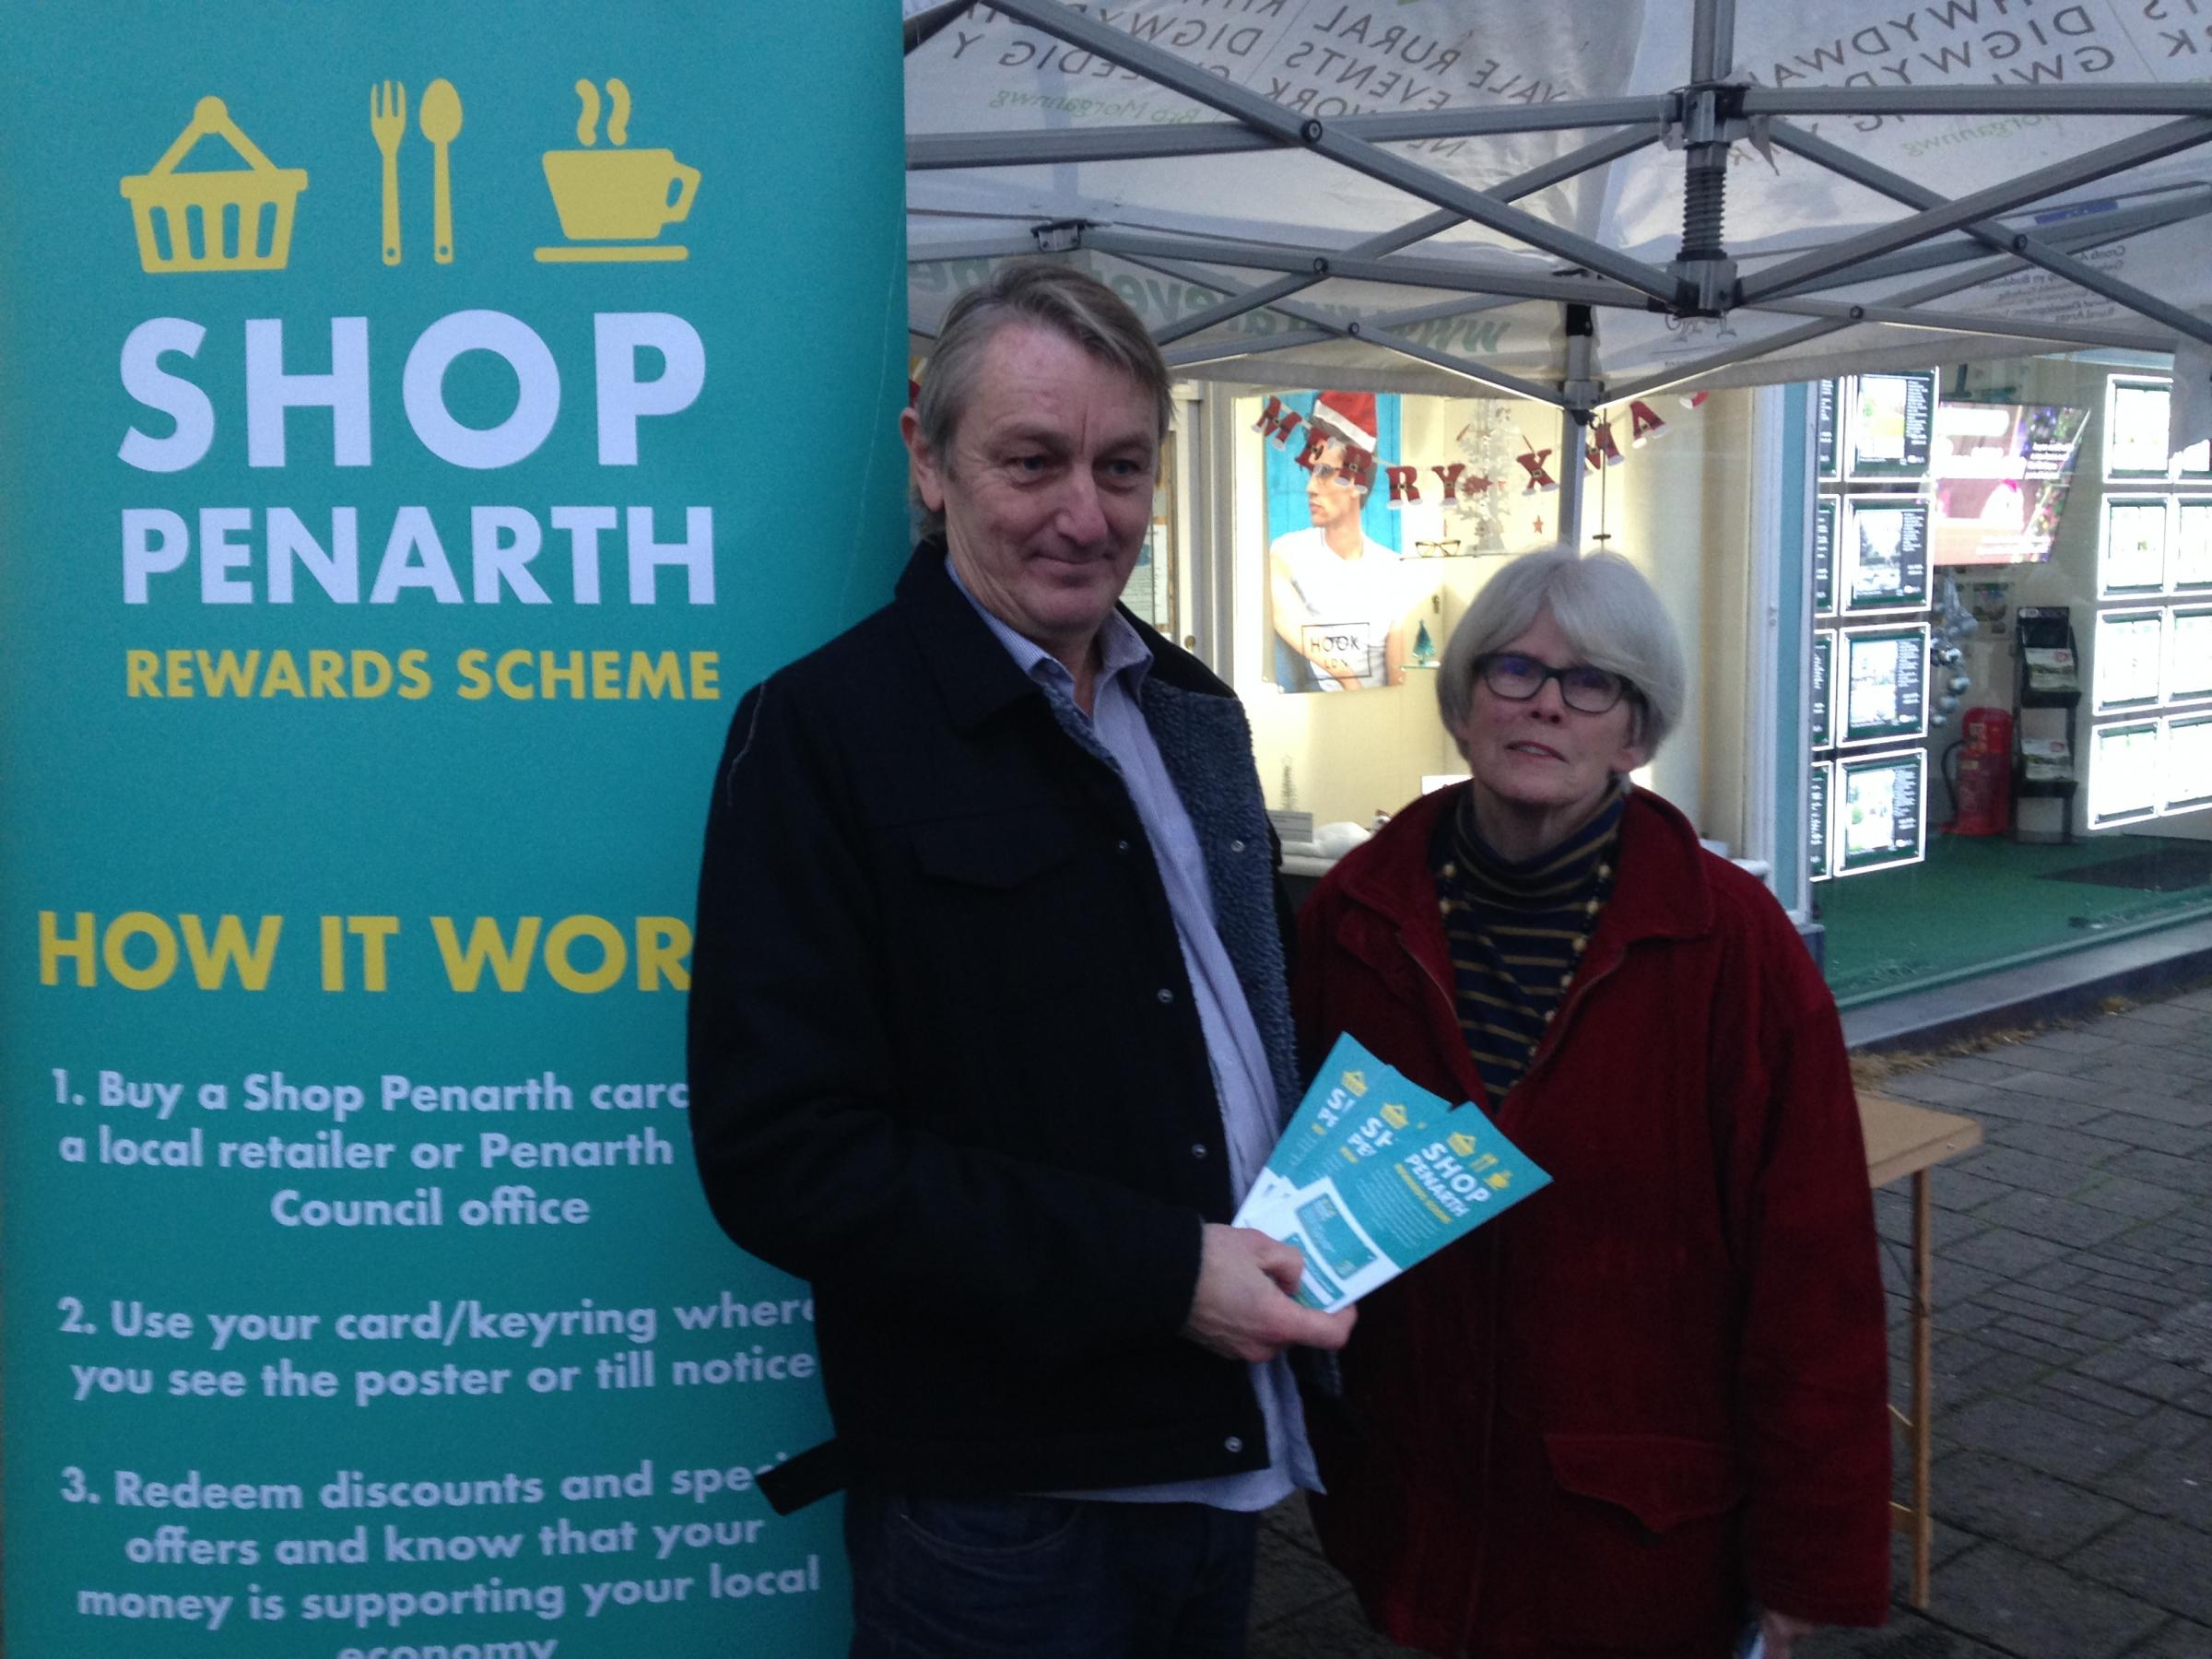 Anthony Slaughter and Tricia Griffiths at the Shop Penarth stall at this year's Christmas lights switch on